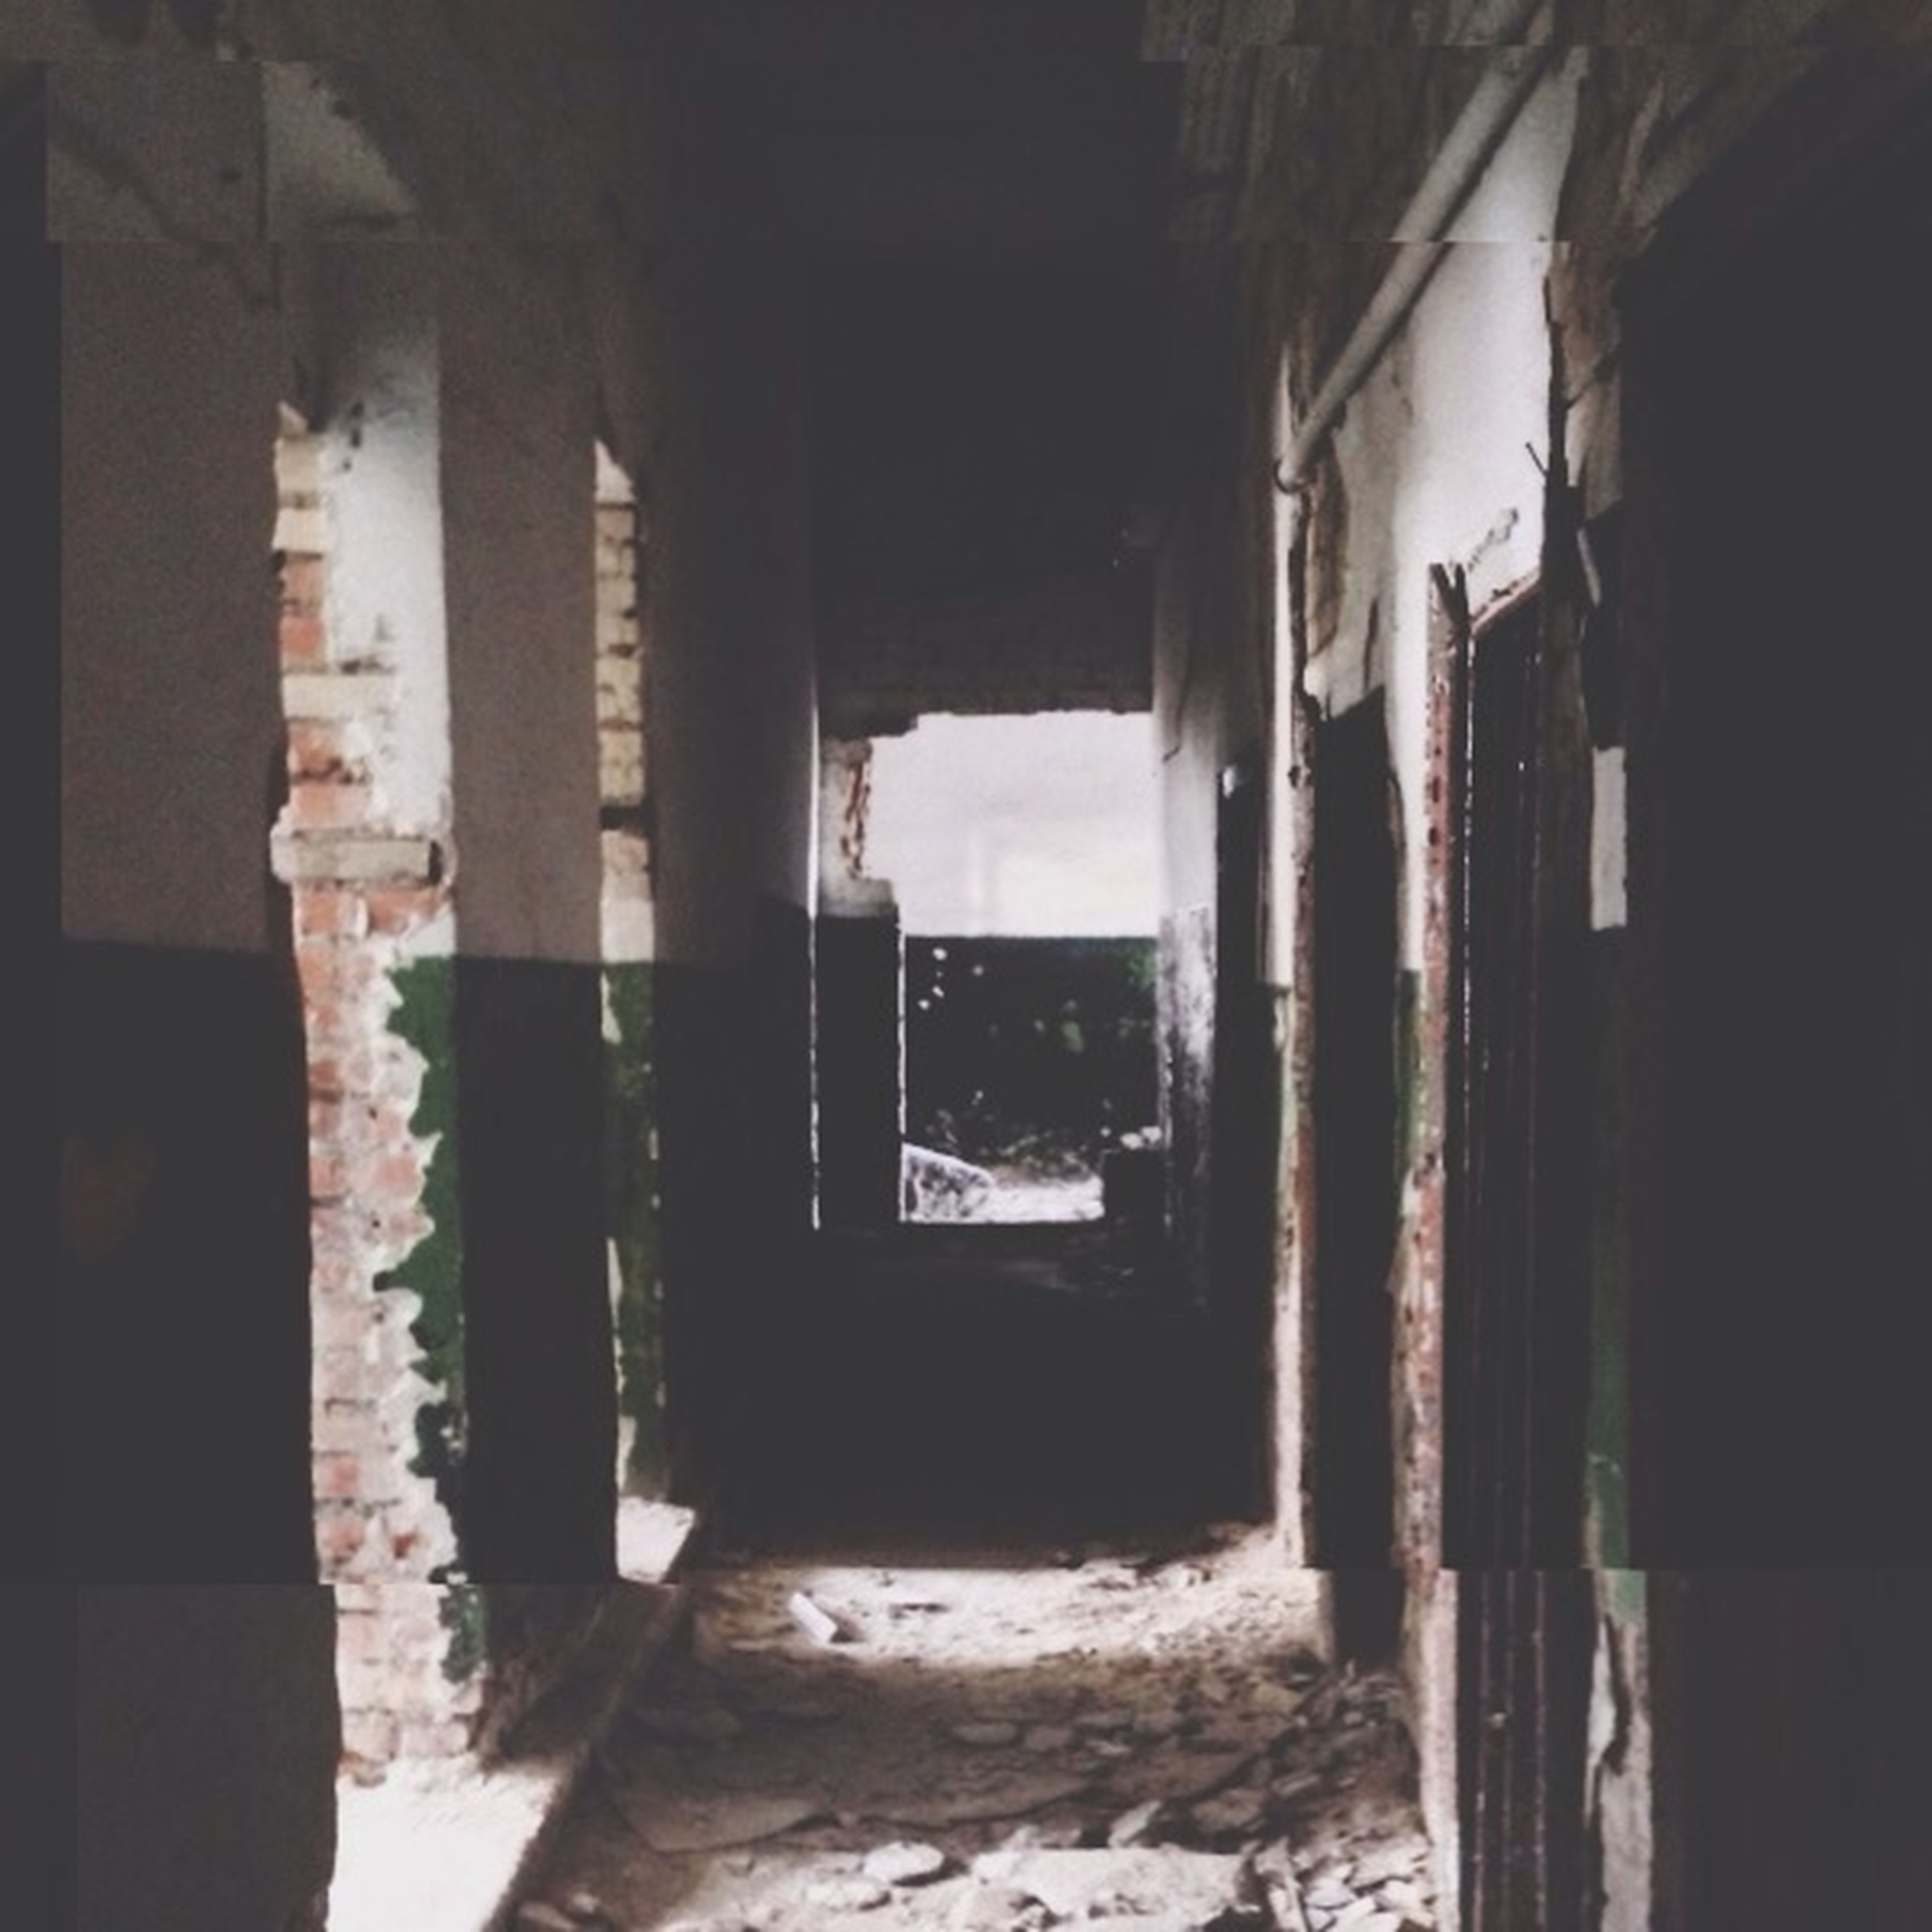 indoors, architecture, built structure, abandoned, window, architectural column, old, interior, old ruin, damaged, corridor, obsolete, run-down, history, column, building, ruined, deterioration, arch, day